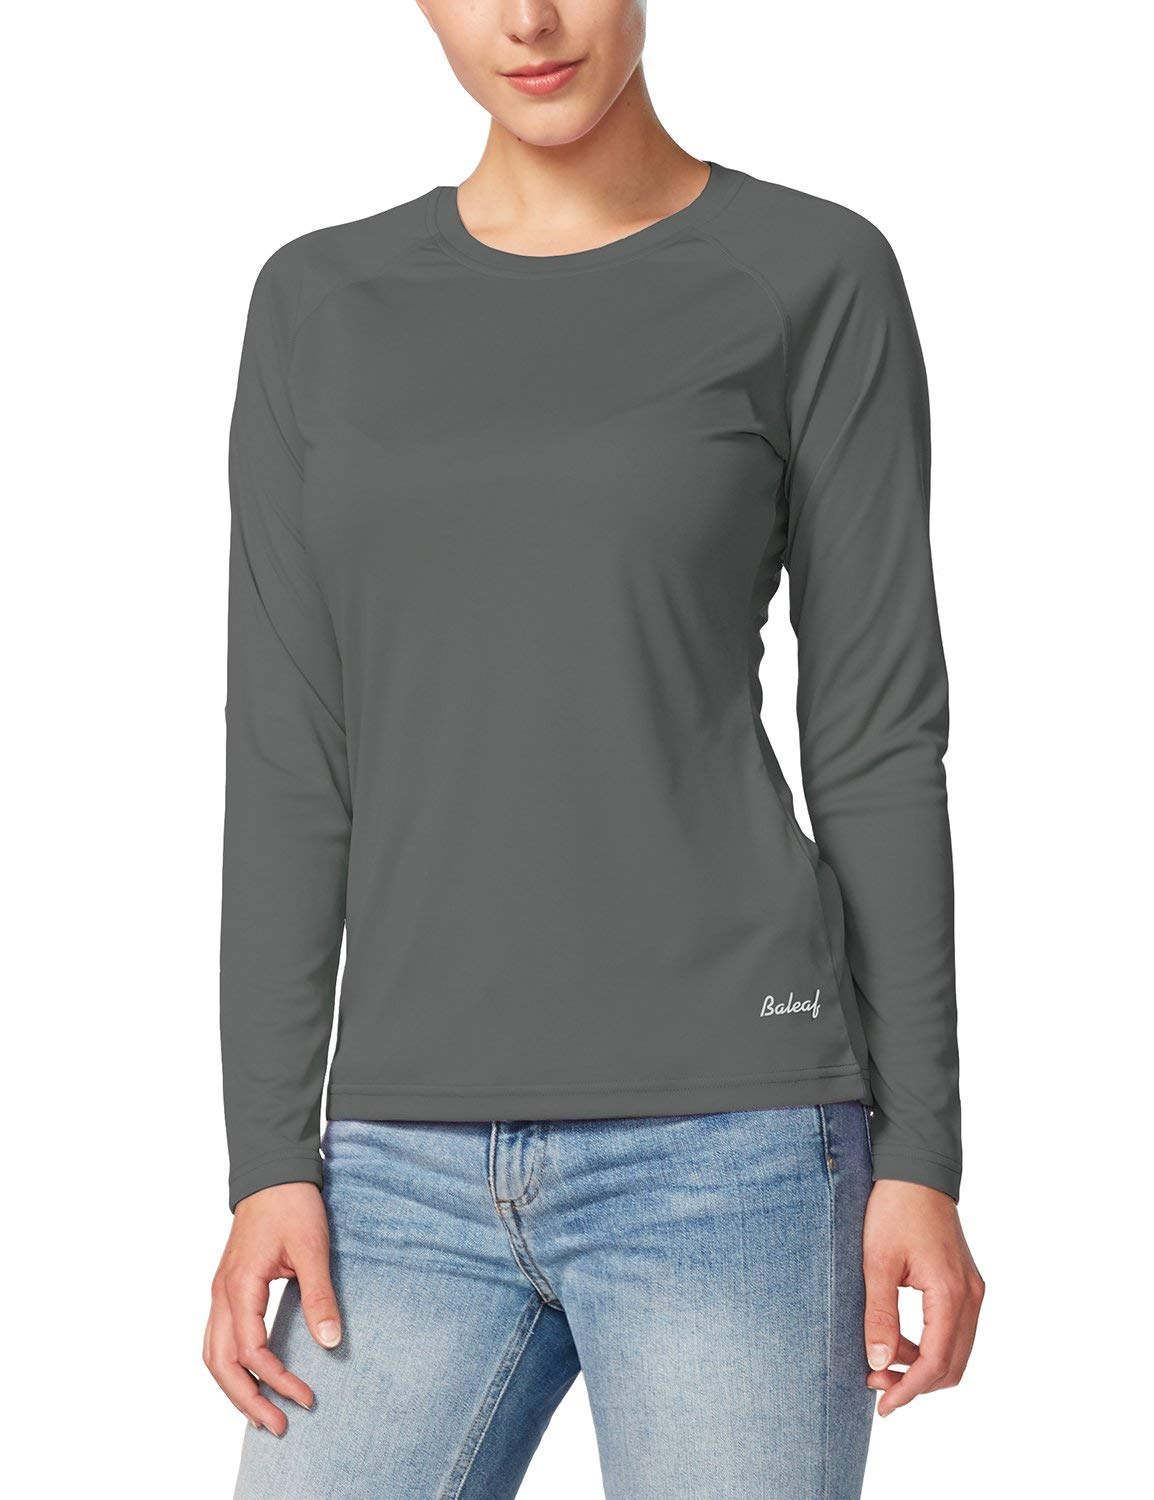 BALEAF Women's UPF 50+ Sun Protection T-Shirt Long Sleeve Outdoor Performance Charcoal Gray Size XL by BALEAF